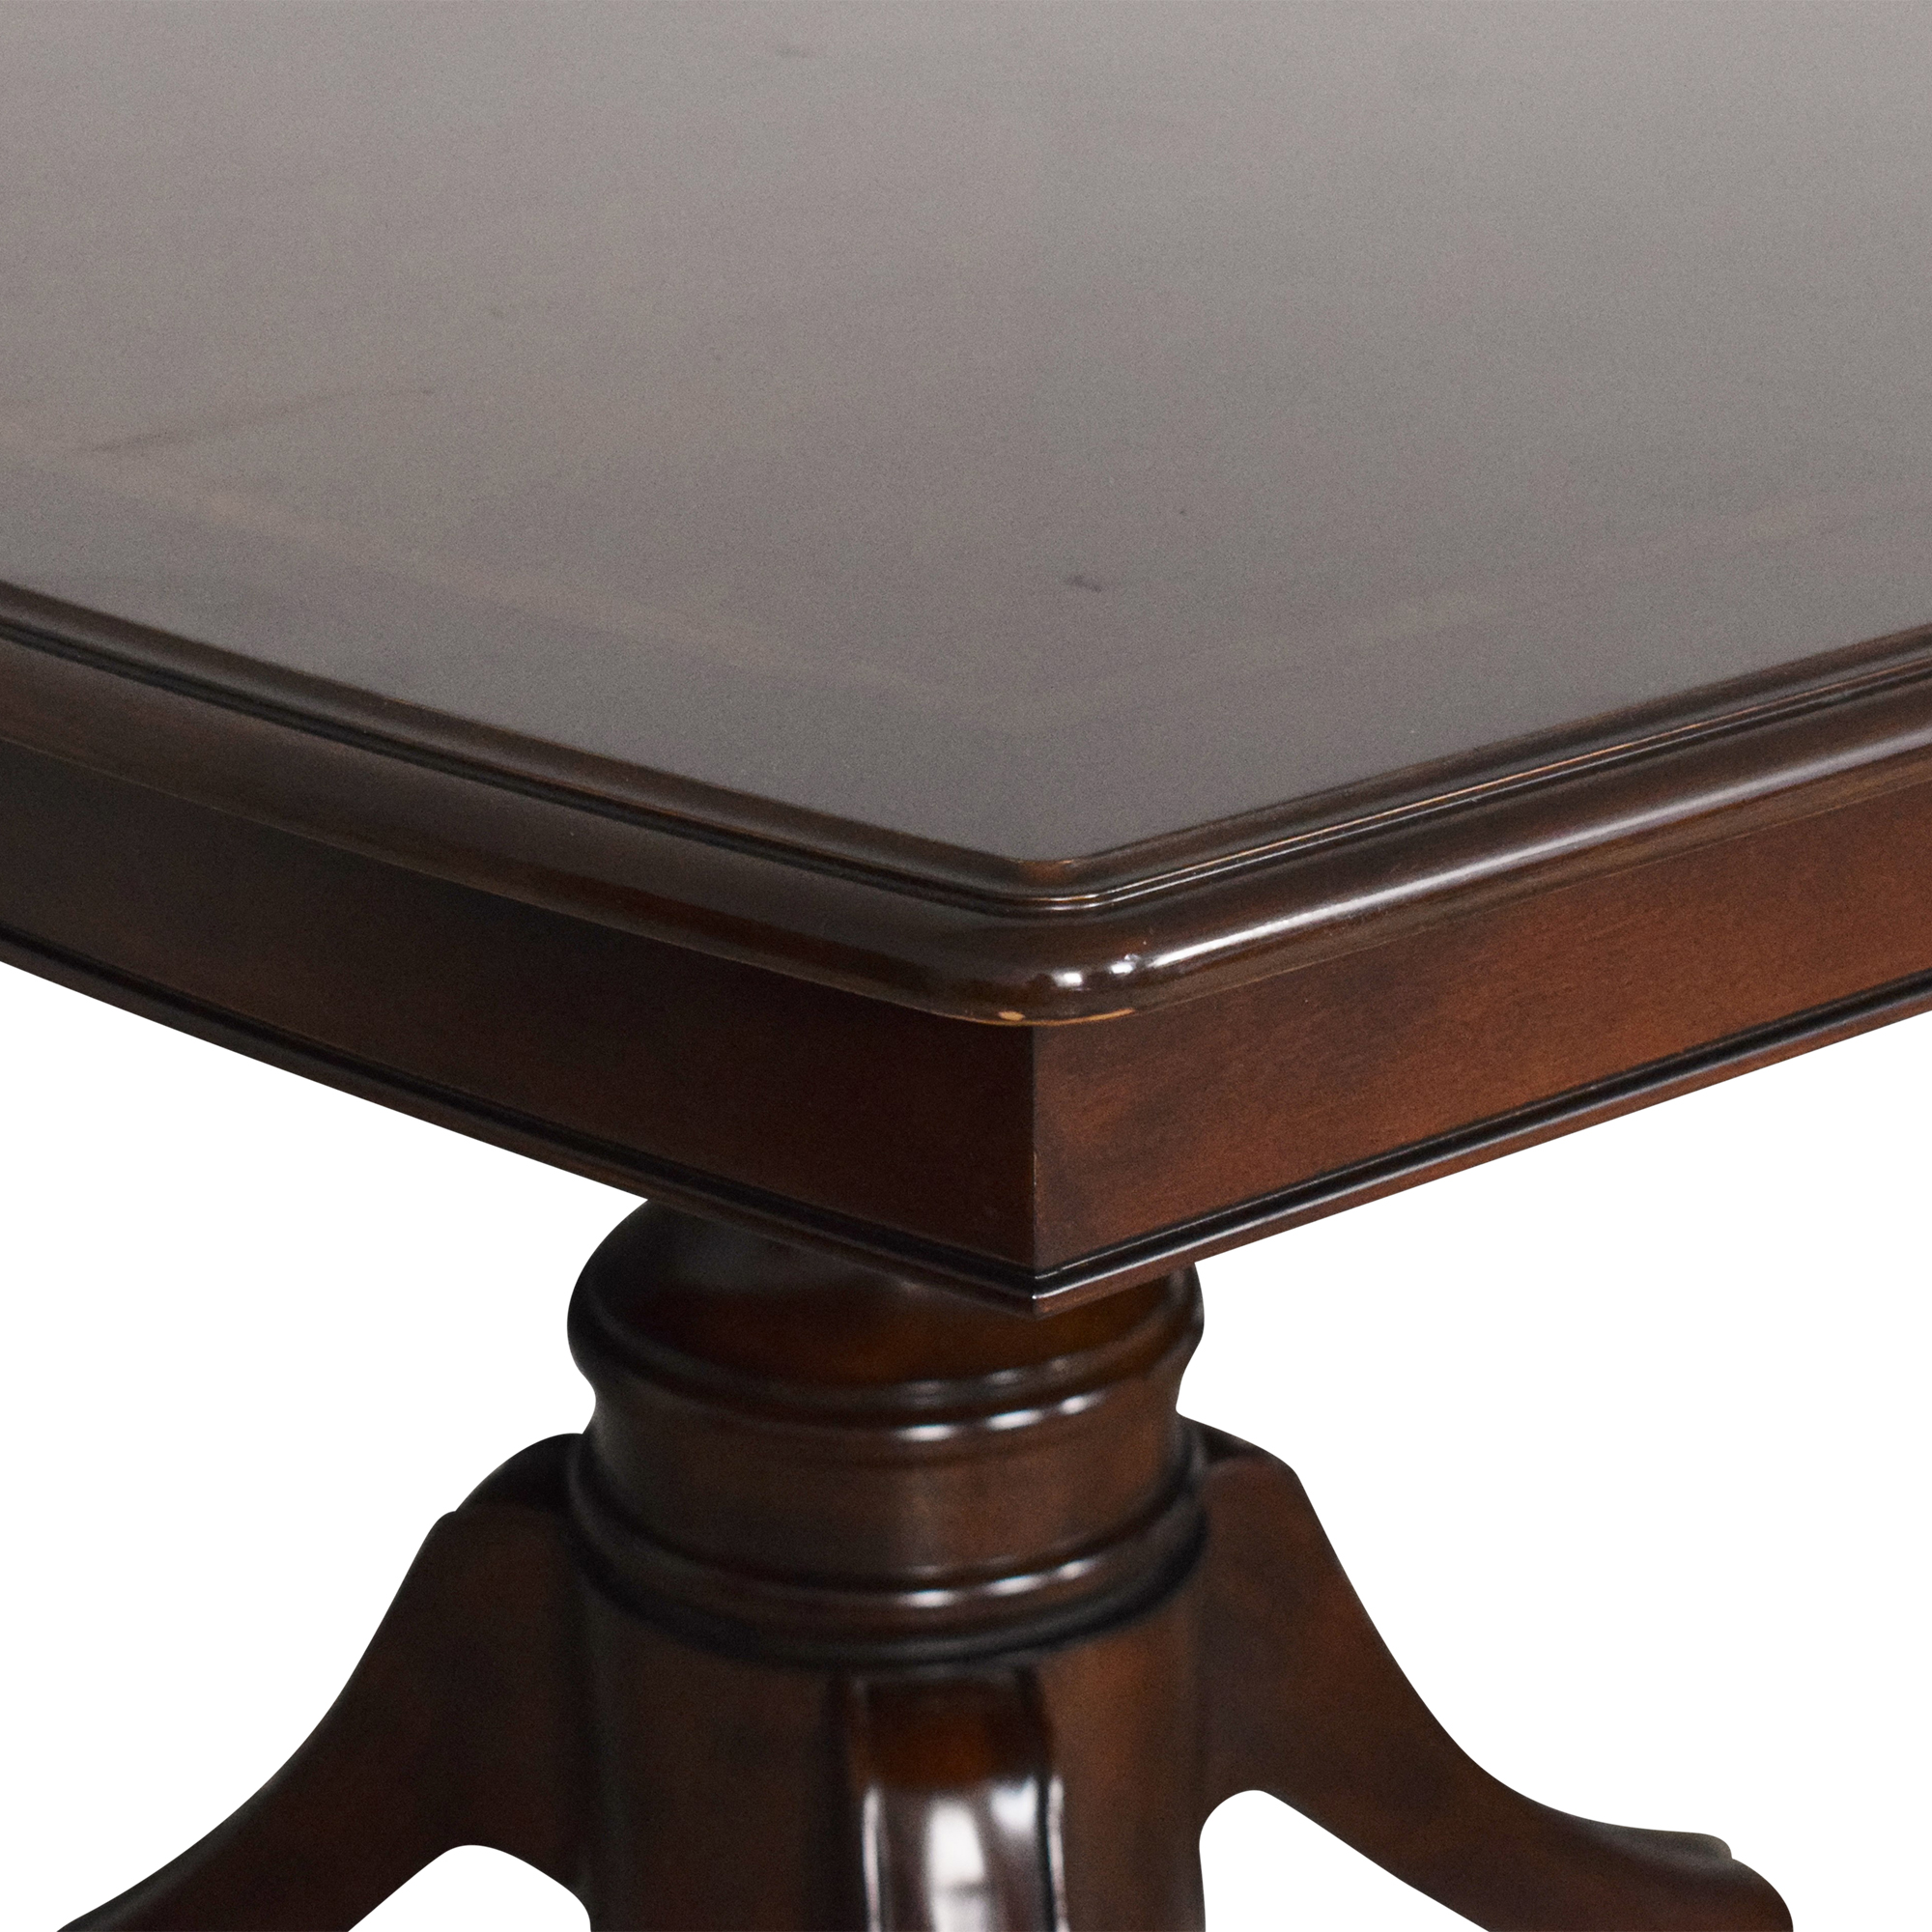 buy Raymour & Flanigan Raymour & Flanigan Double Pedestal Extendable Dining Table online